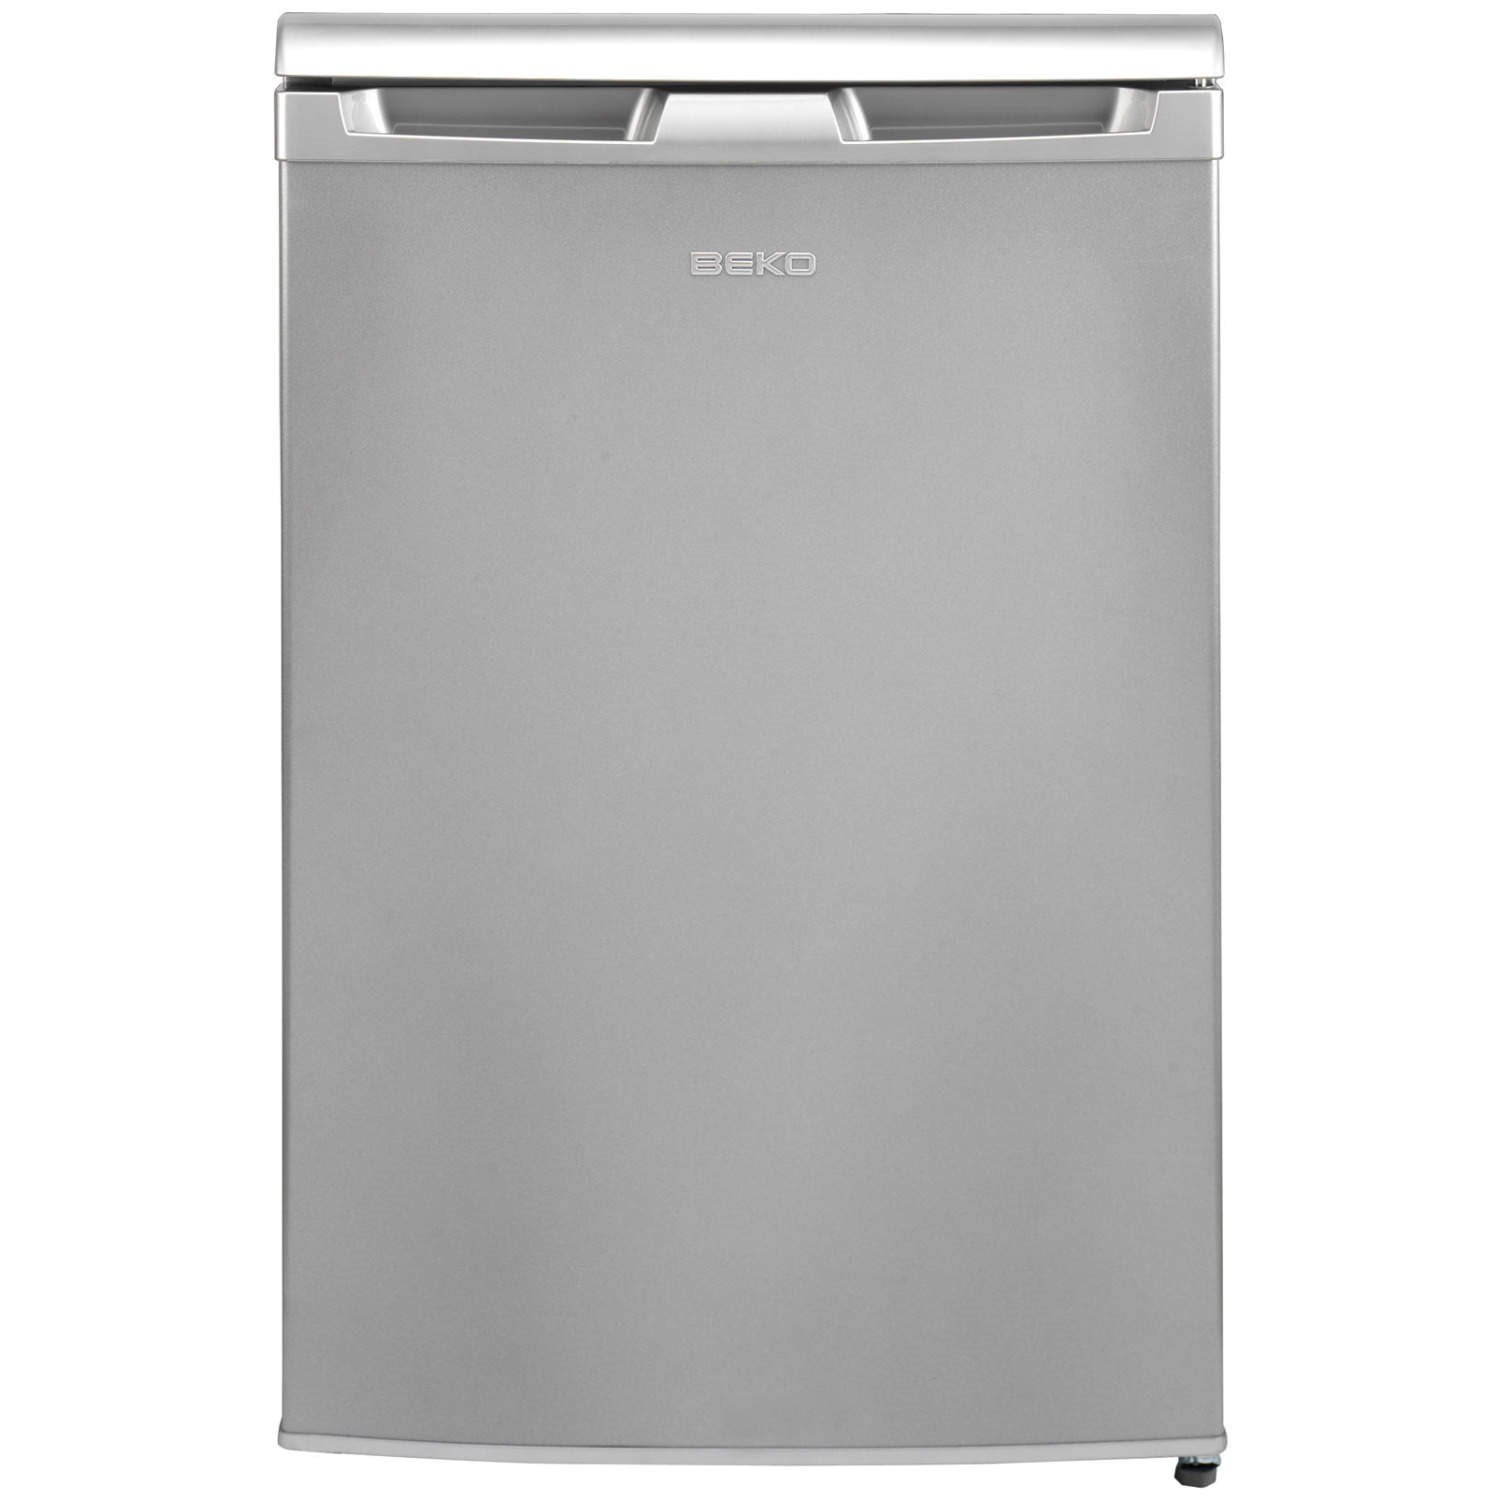 Beko UL584AP Low kitchen top 130L A+ Silver - Refrigerator (130L, SN-t, 42dB, A+, Silver). [Energy Class A+]